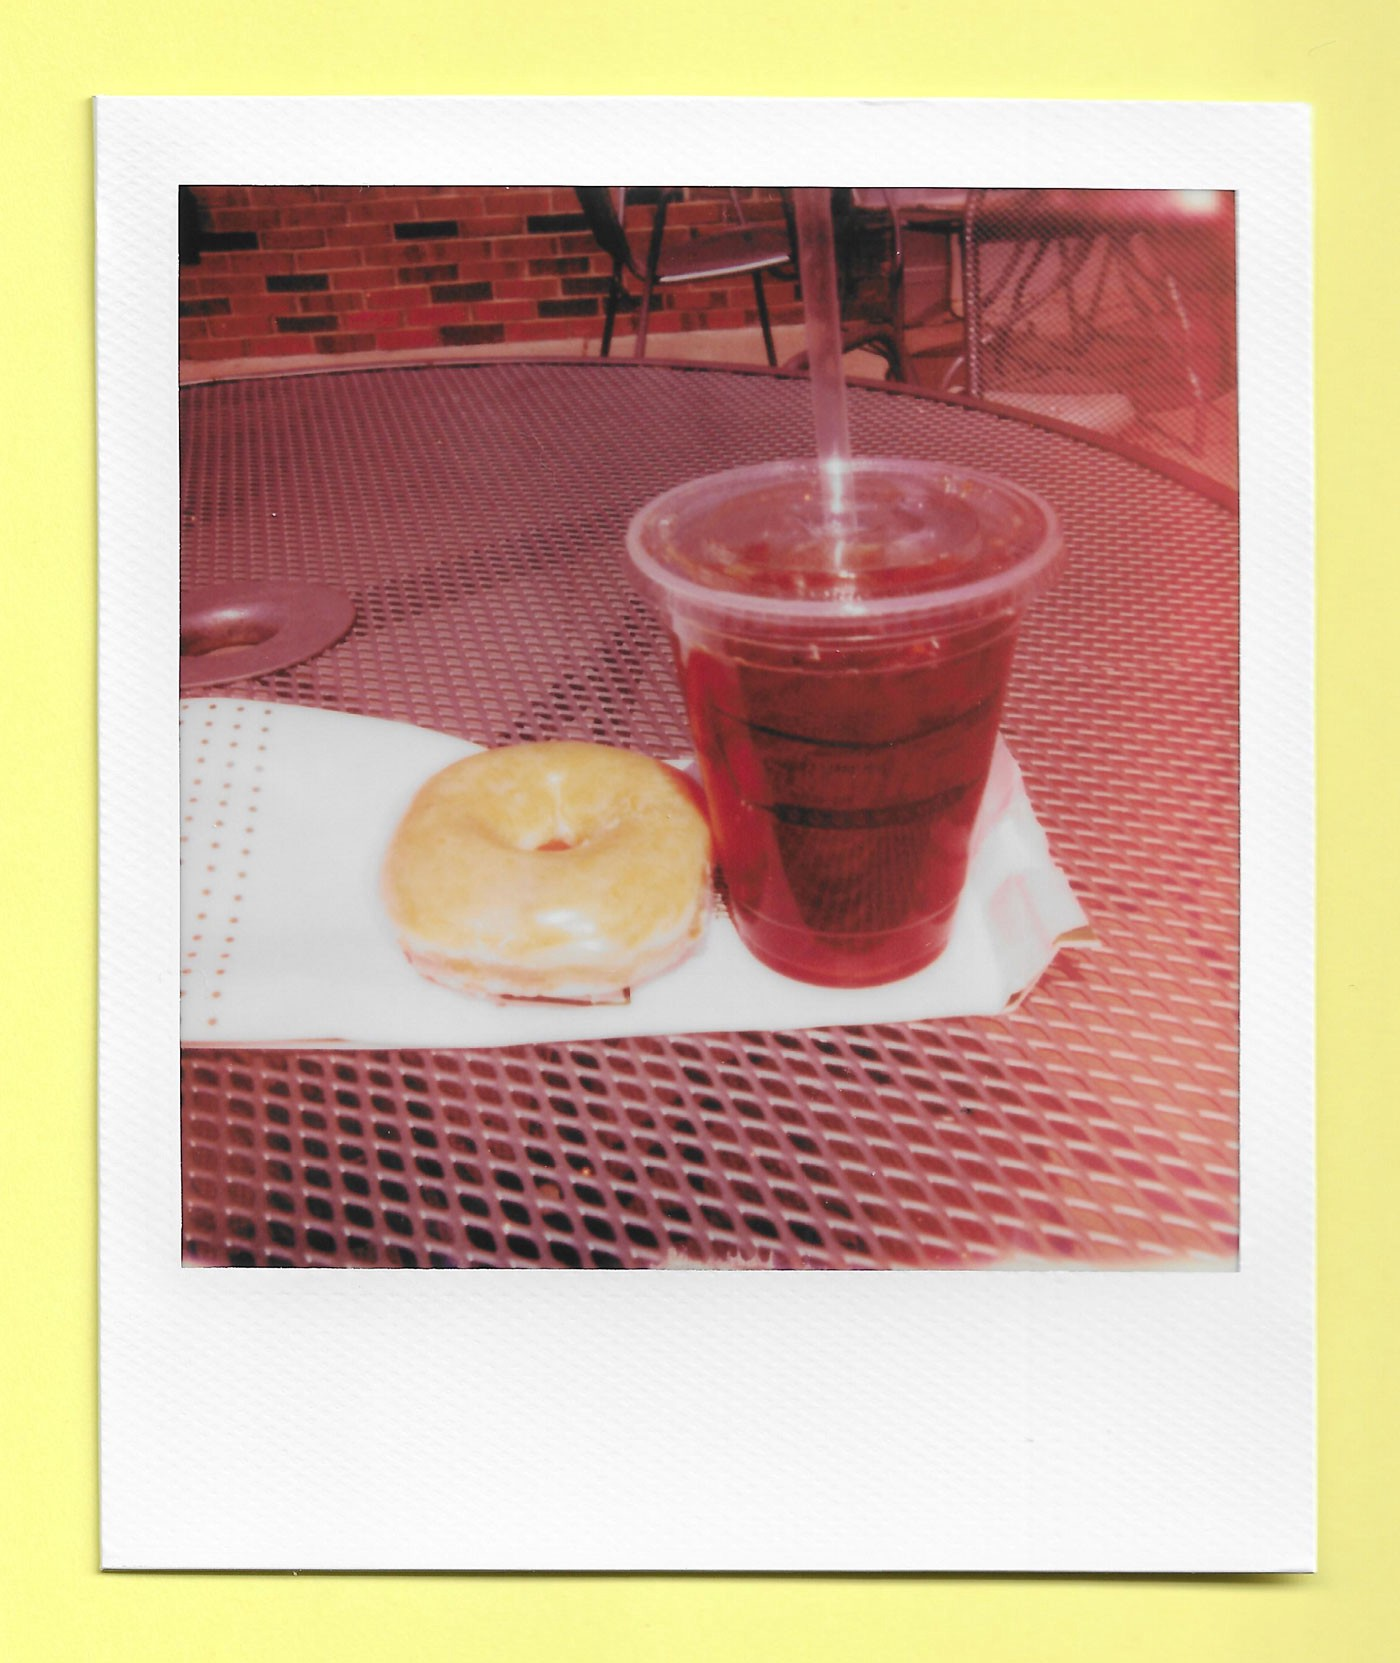 A donut and a plastic cup of iced tea sitting on a table